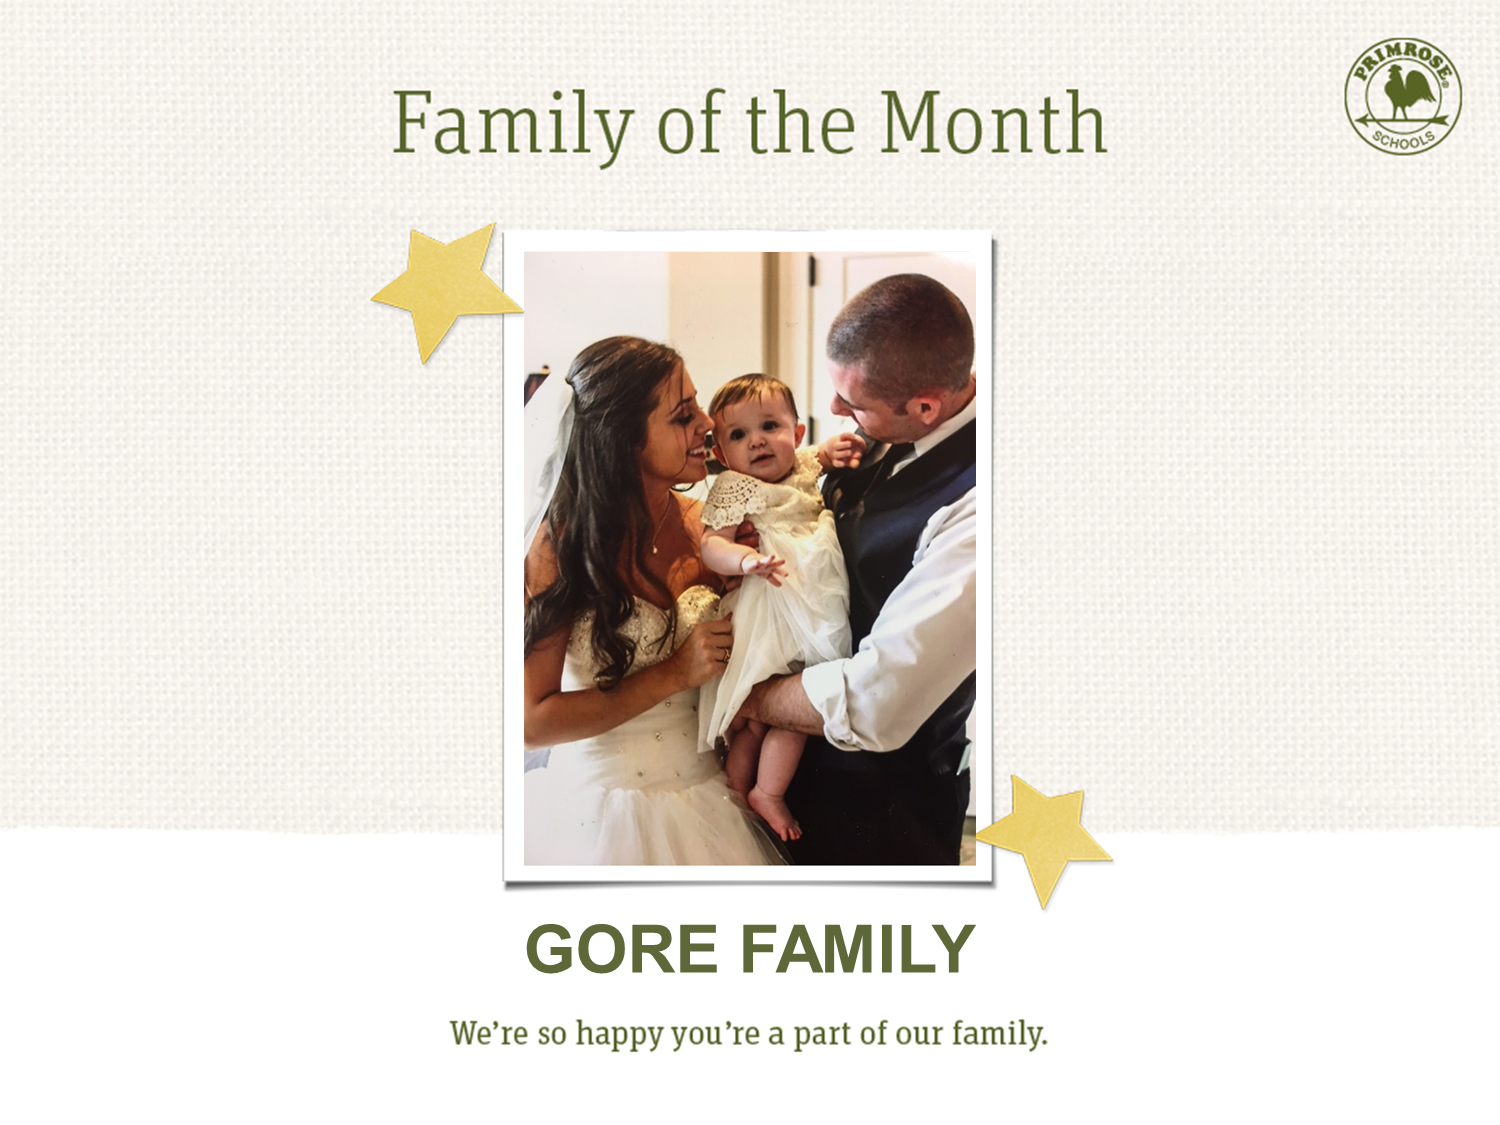 The Gore family, family of the month